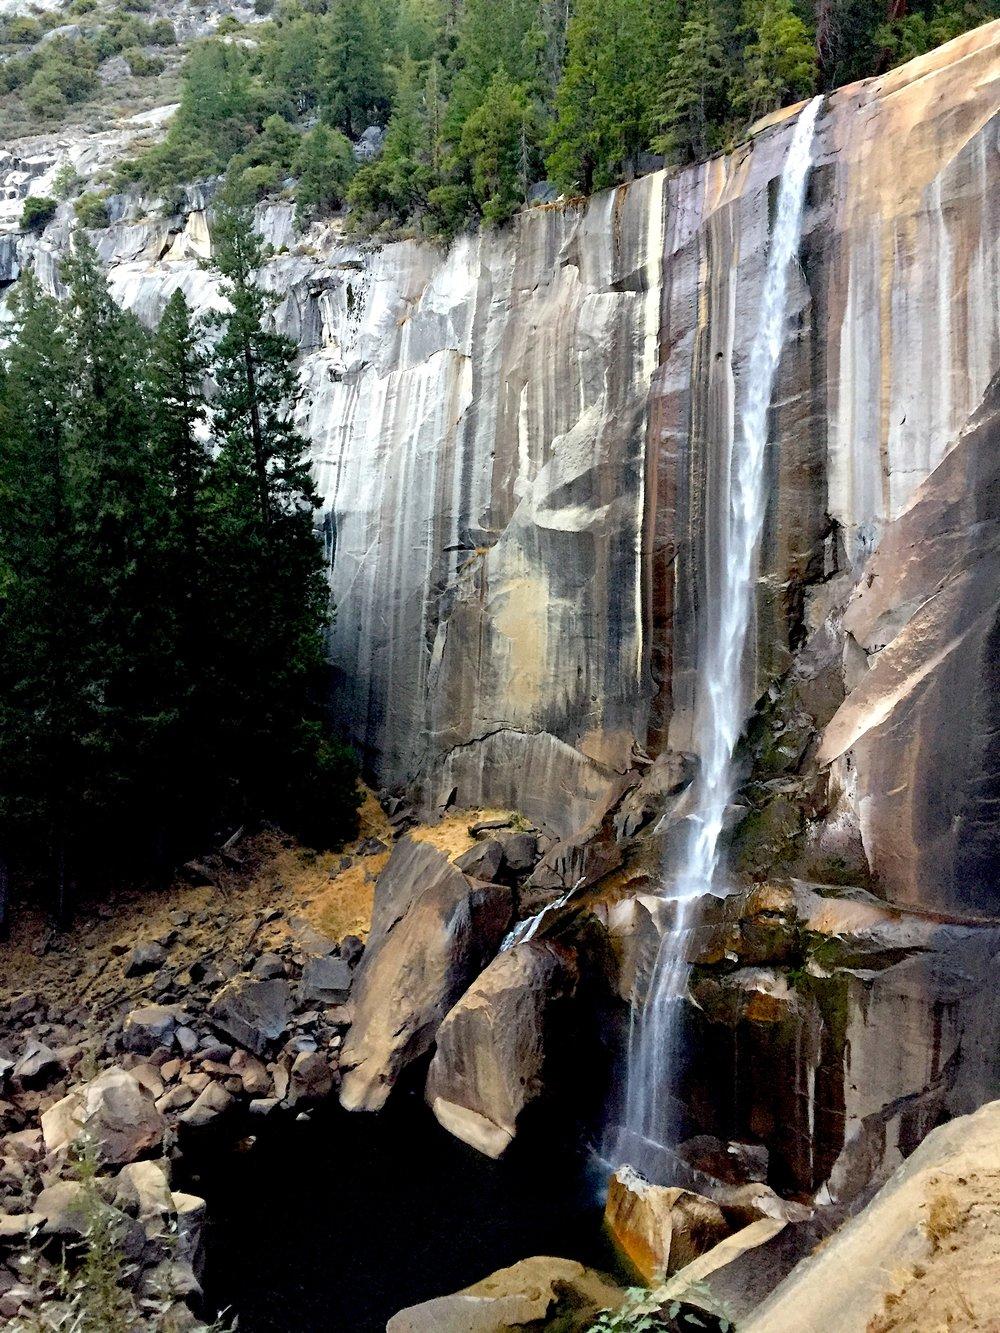 Vernal selalesi / Vernal fall